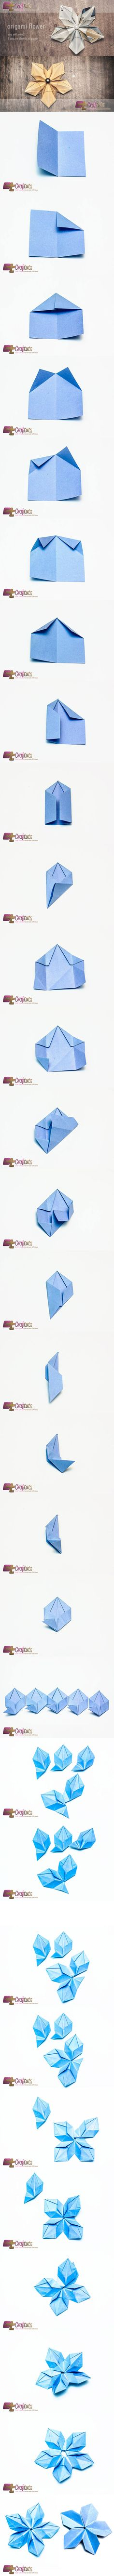 Super origami flowers tutorial step by step 64 Ideas Diy Origami, Gato Origami, Origami Modular, Origami And Kirigami, Origami Paper Art, Origami Folding, Useful Origami, Origami Stars, Diy Paper